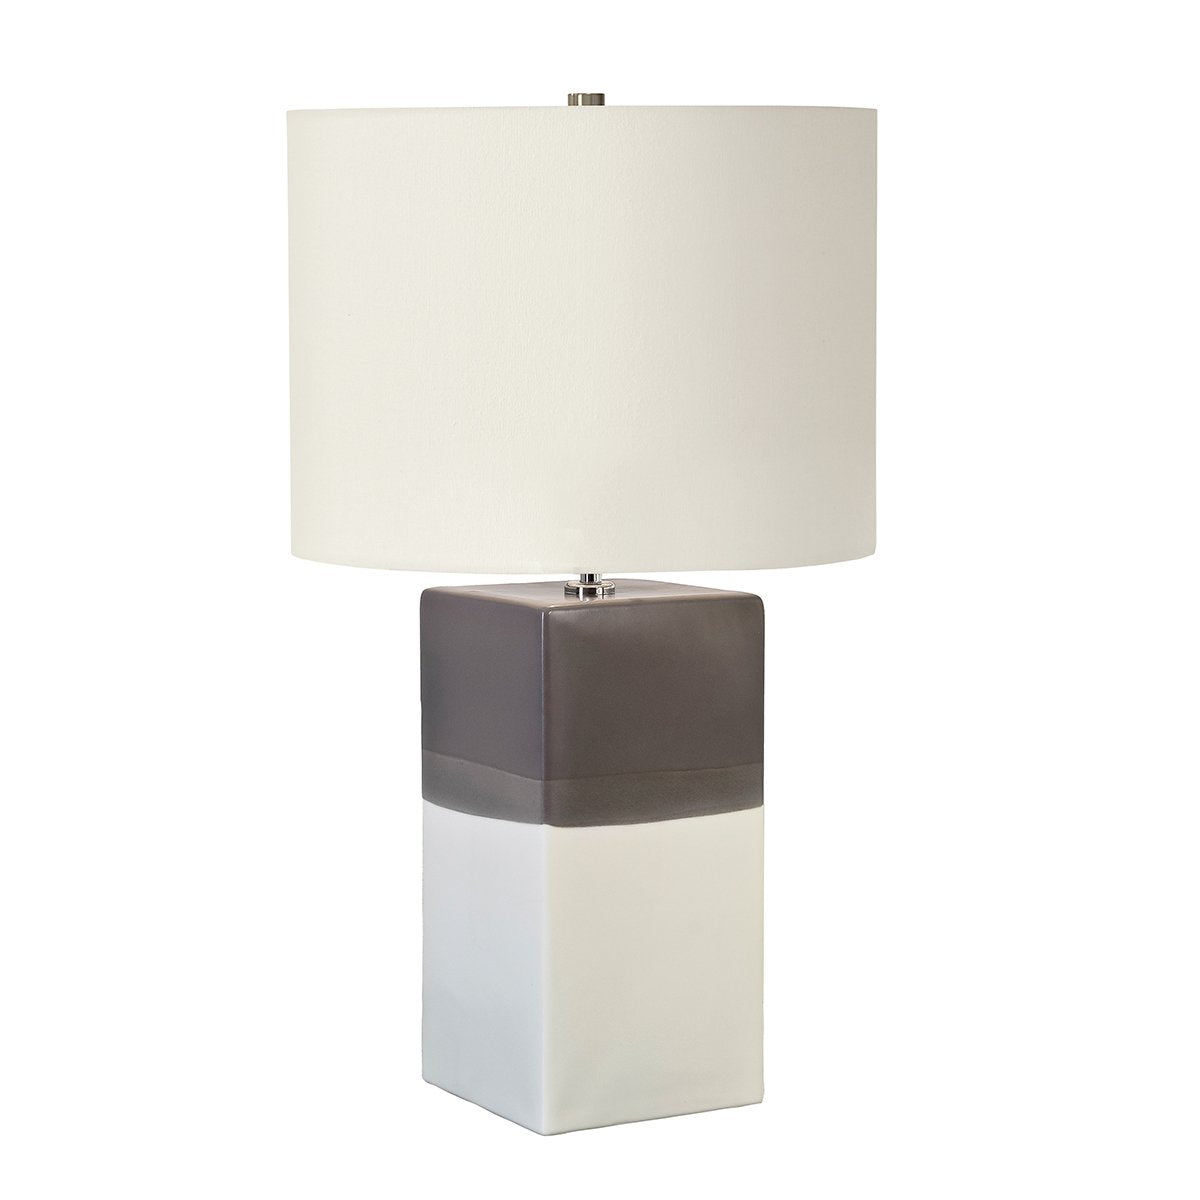 Cream Ceramic Table Lamp With Light Grey Shade - ID 9394